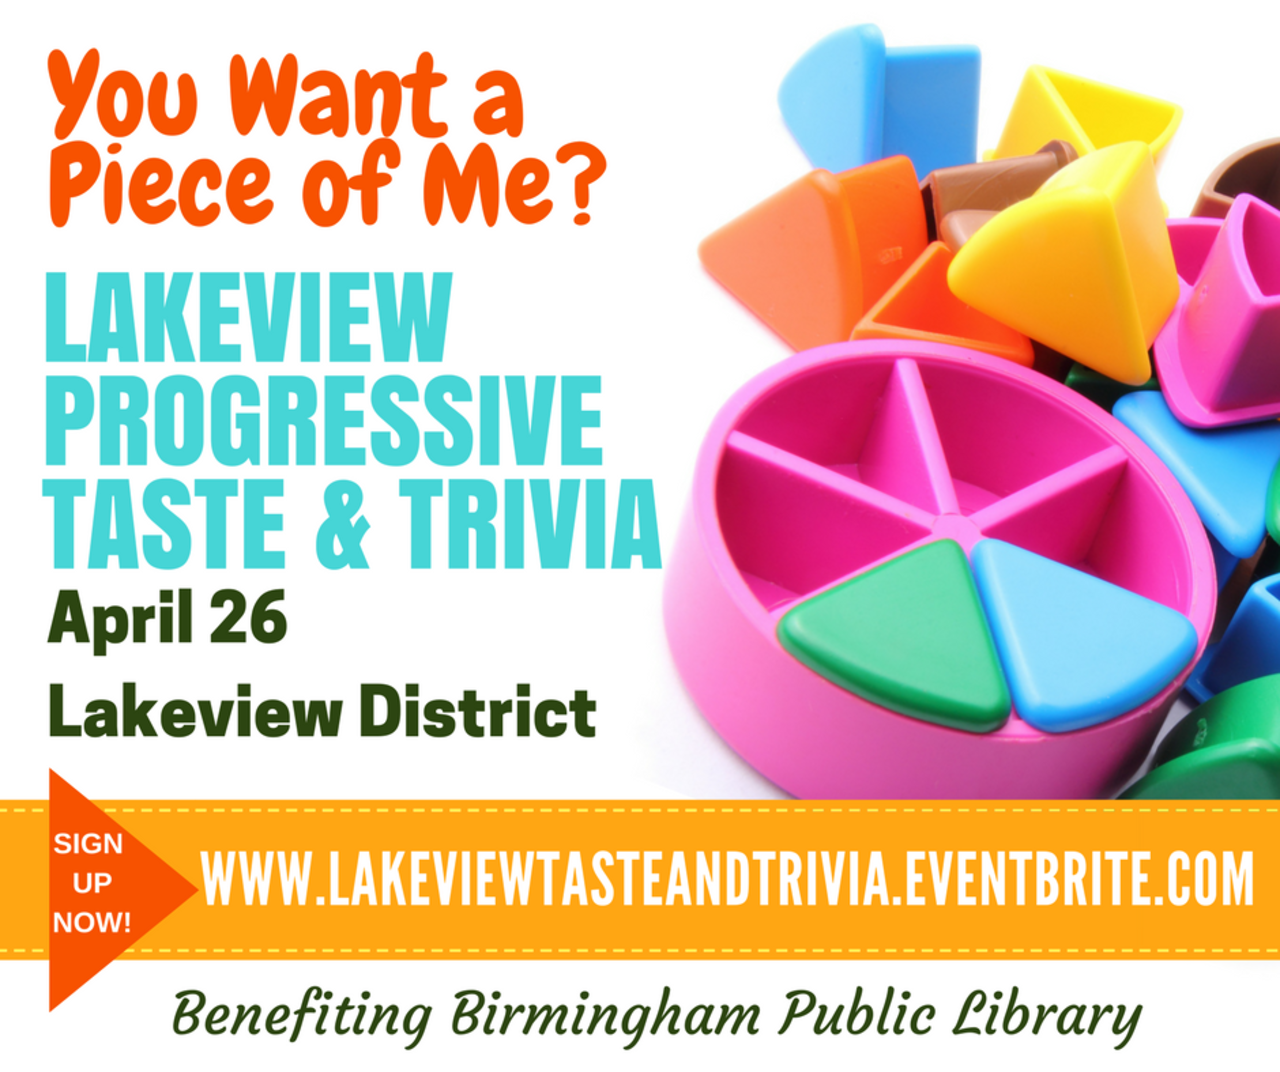 Lakeview Progressive Taste & Trivia